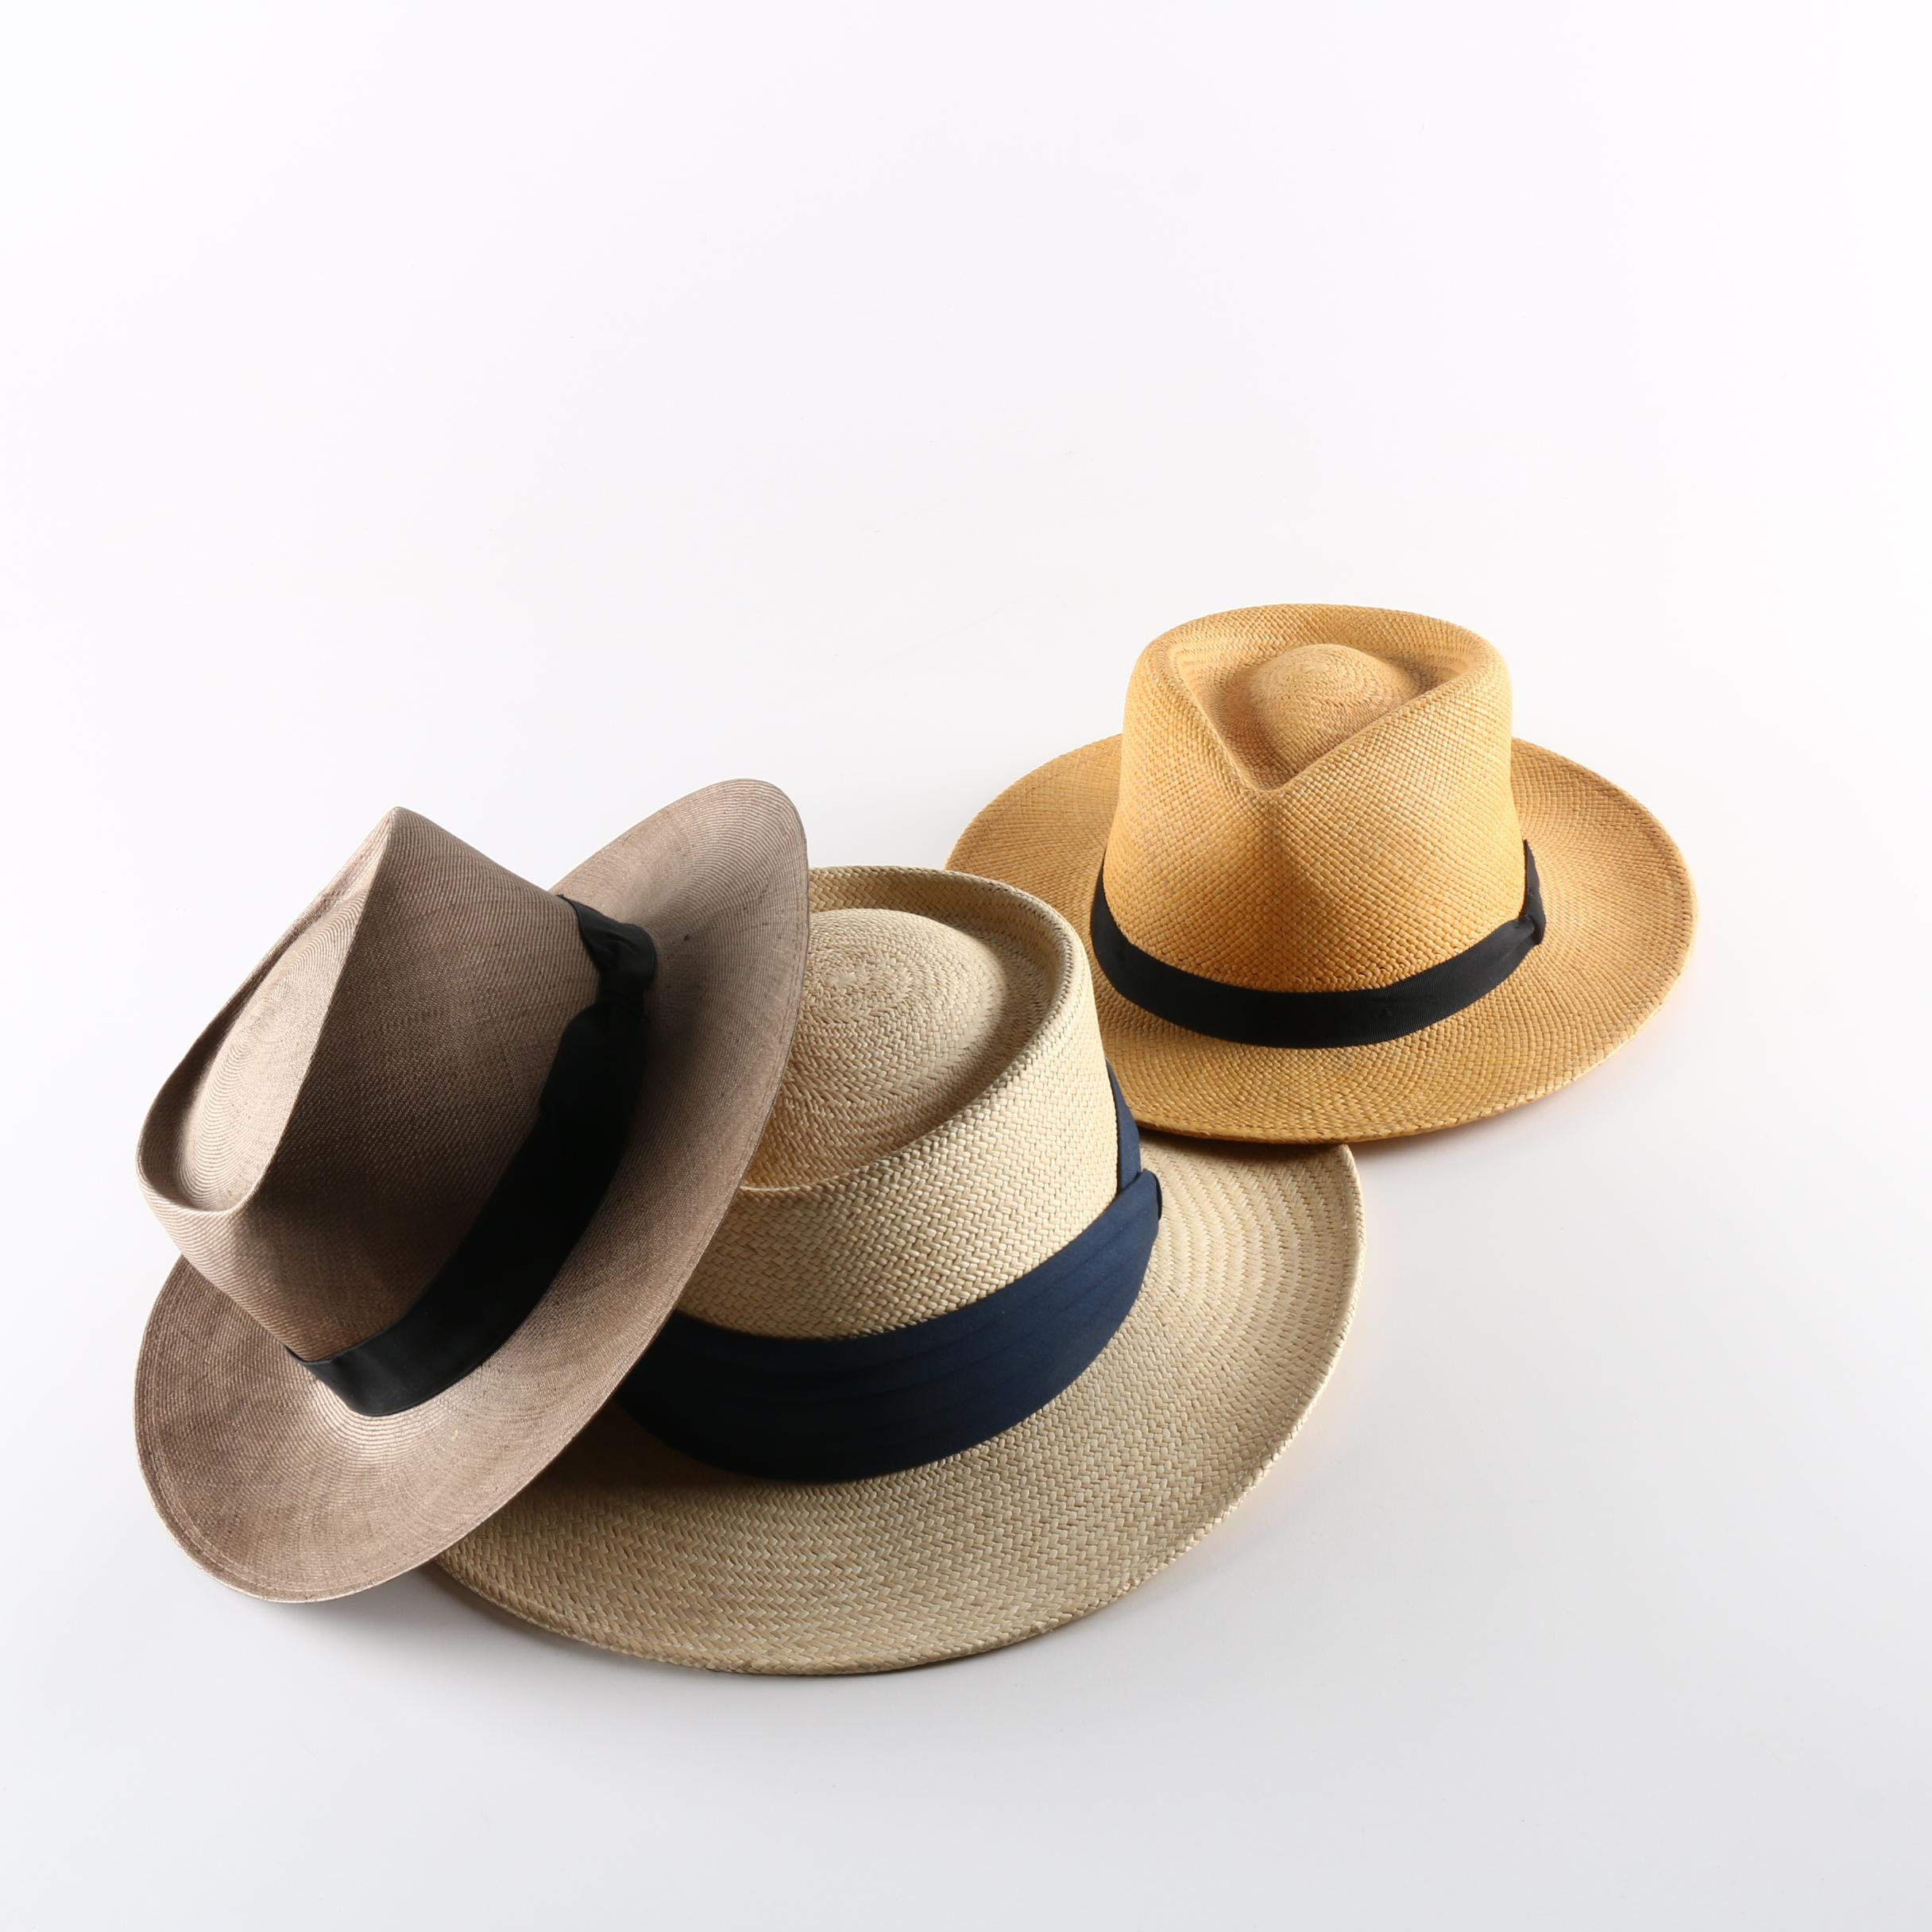 Men's Straw Hats Including Makins for Bergdorf Goodman